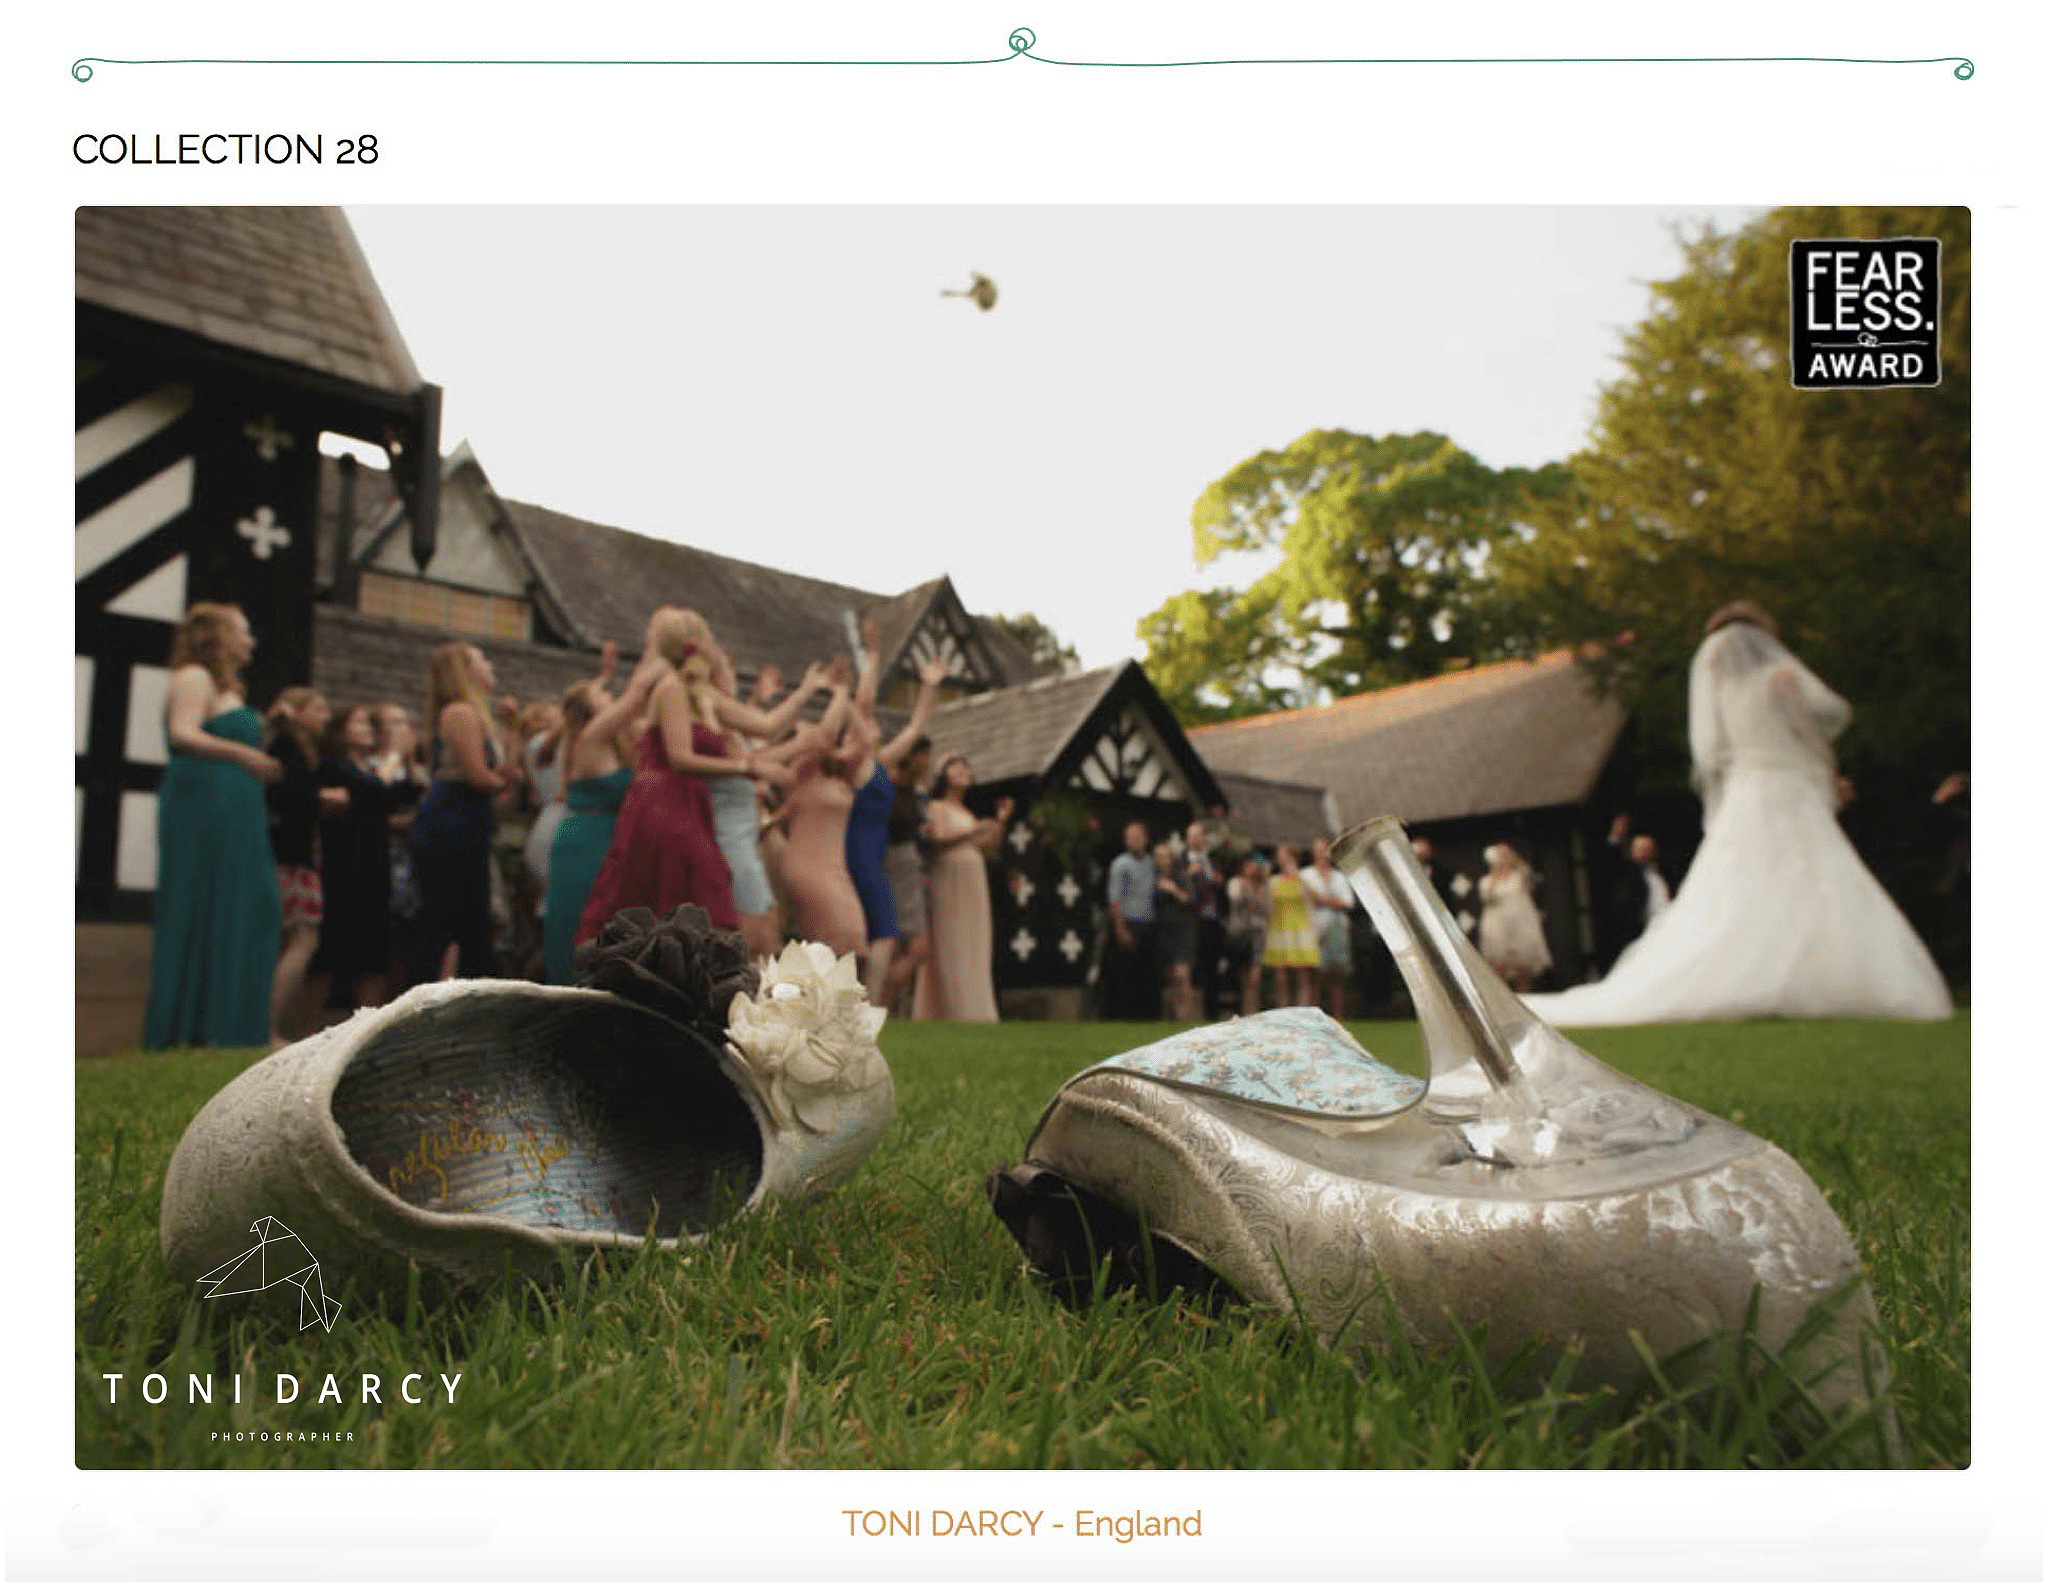 Award winning wedding photographer – I've got a FEARLESS AWARD!